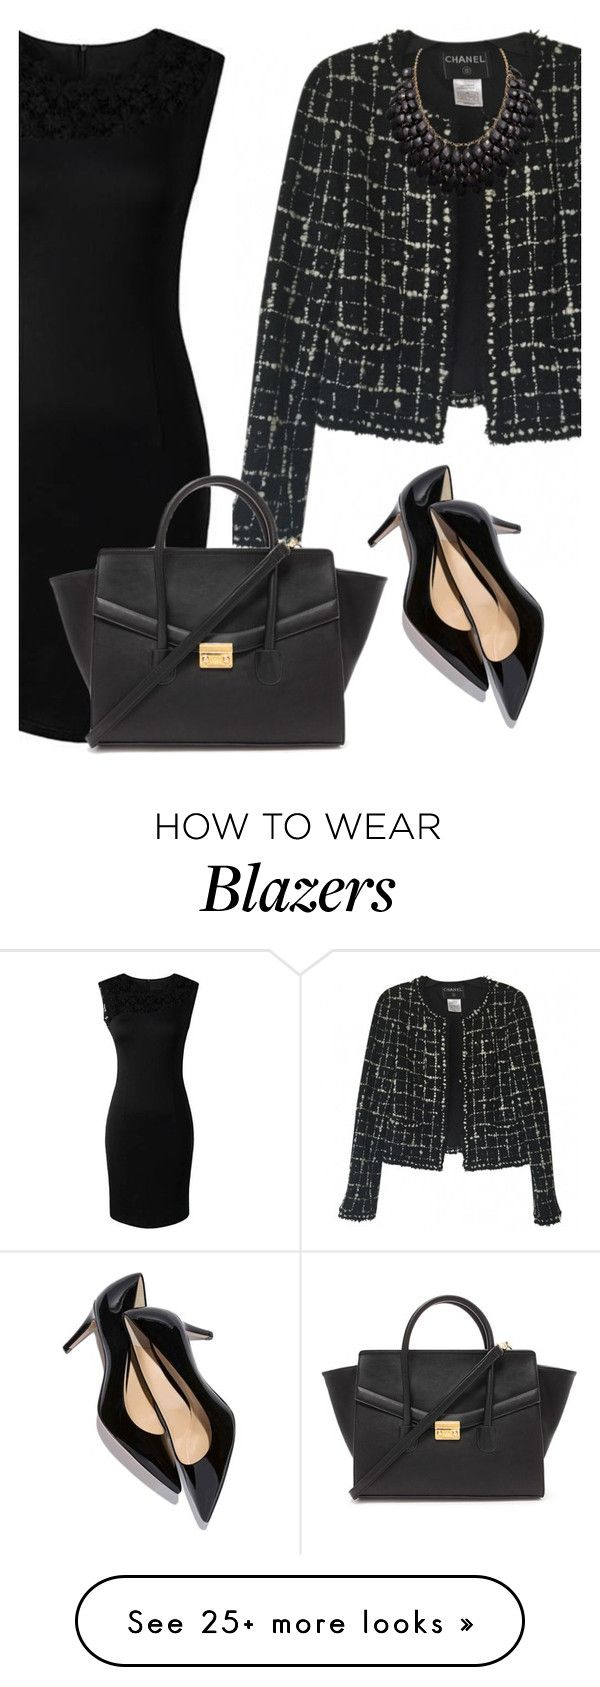 """business look - inspiration"" by monika1555 on Polyvore featuring Chanel, Forever 21, women's clothing, women, female, woman, misses, juniors, business and inspiration"